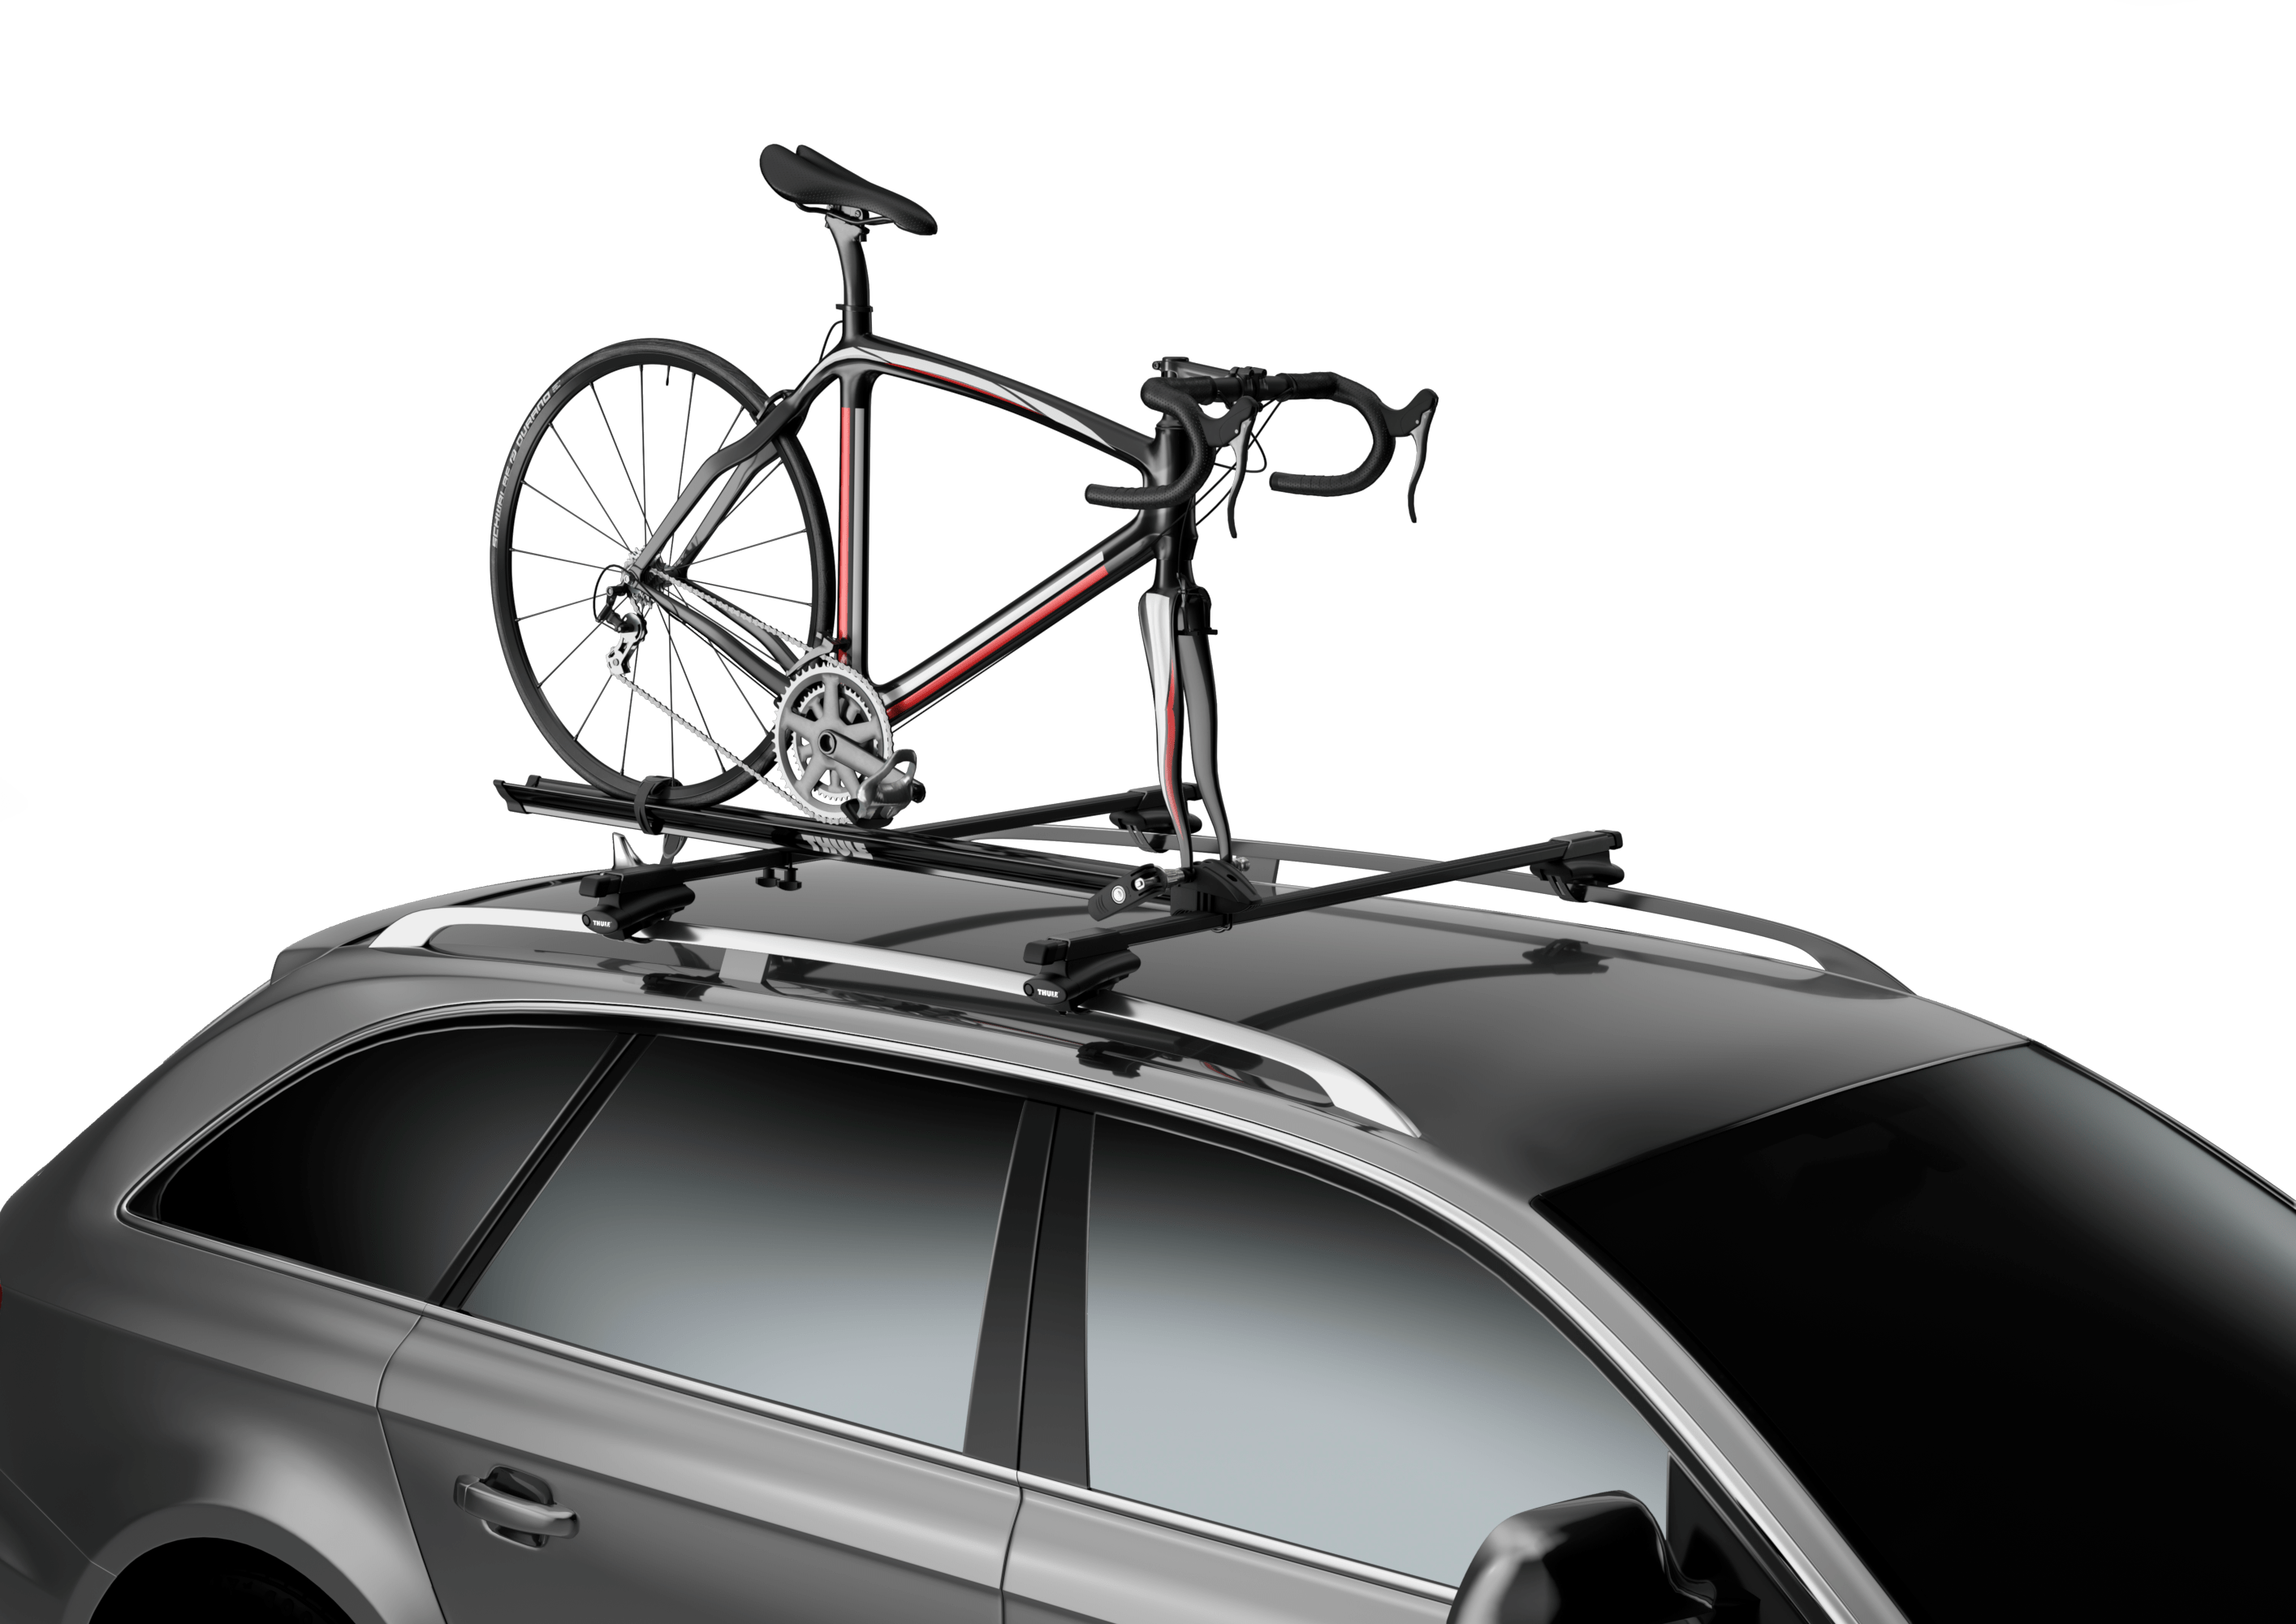 thule roof bike rack, thule roof bike racks, thule prologue bike rack